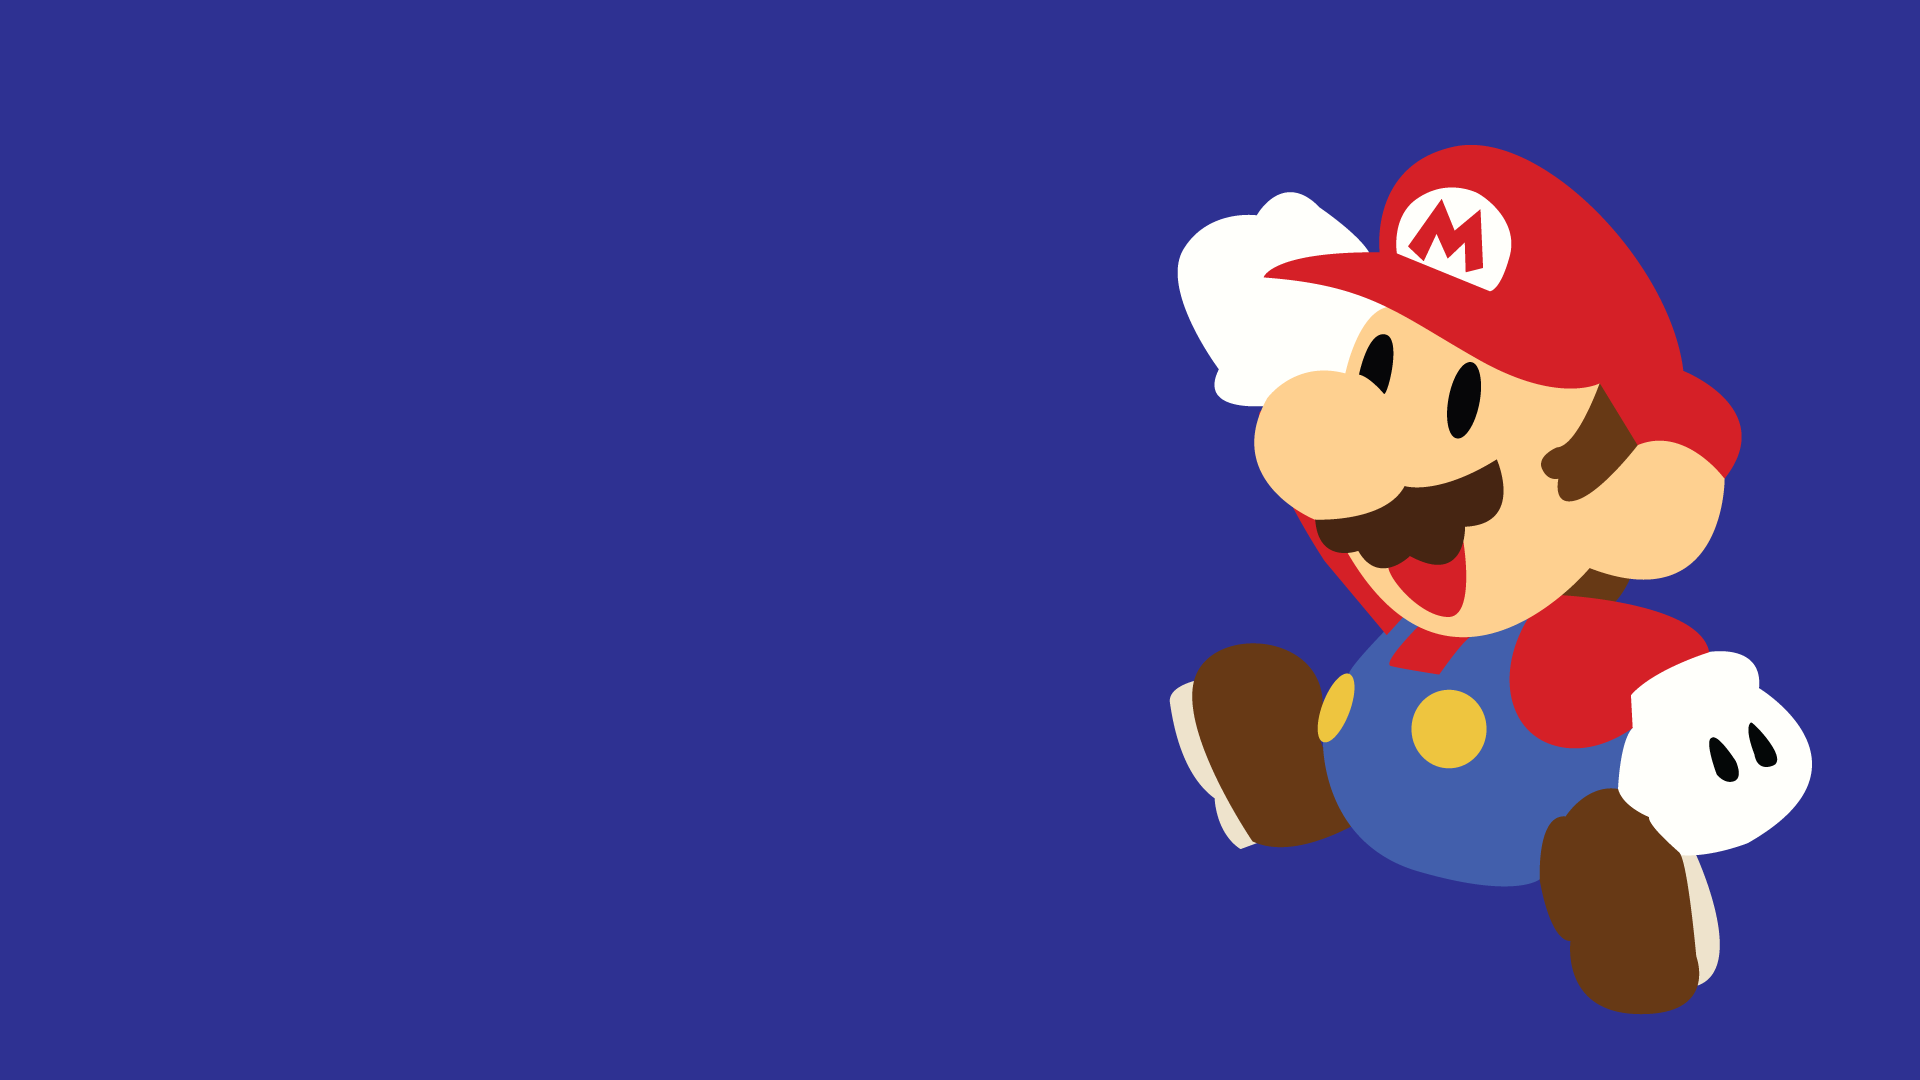 mario full hd wallpaper and background image | 1920x1080 | id:331539